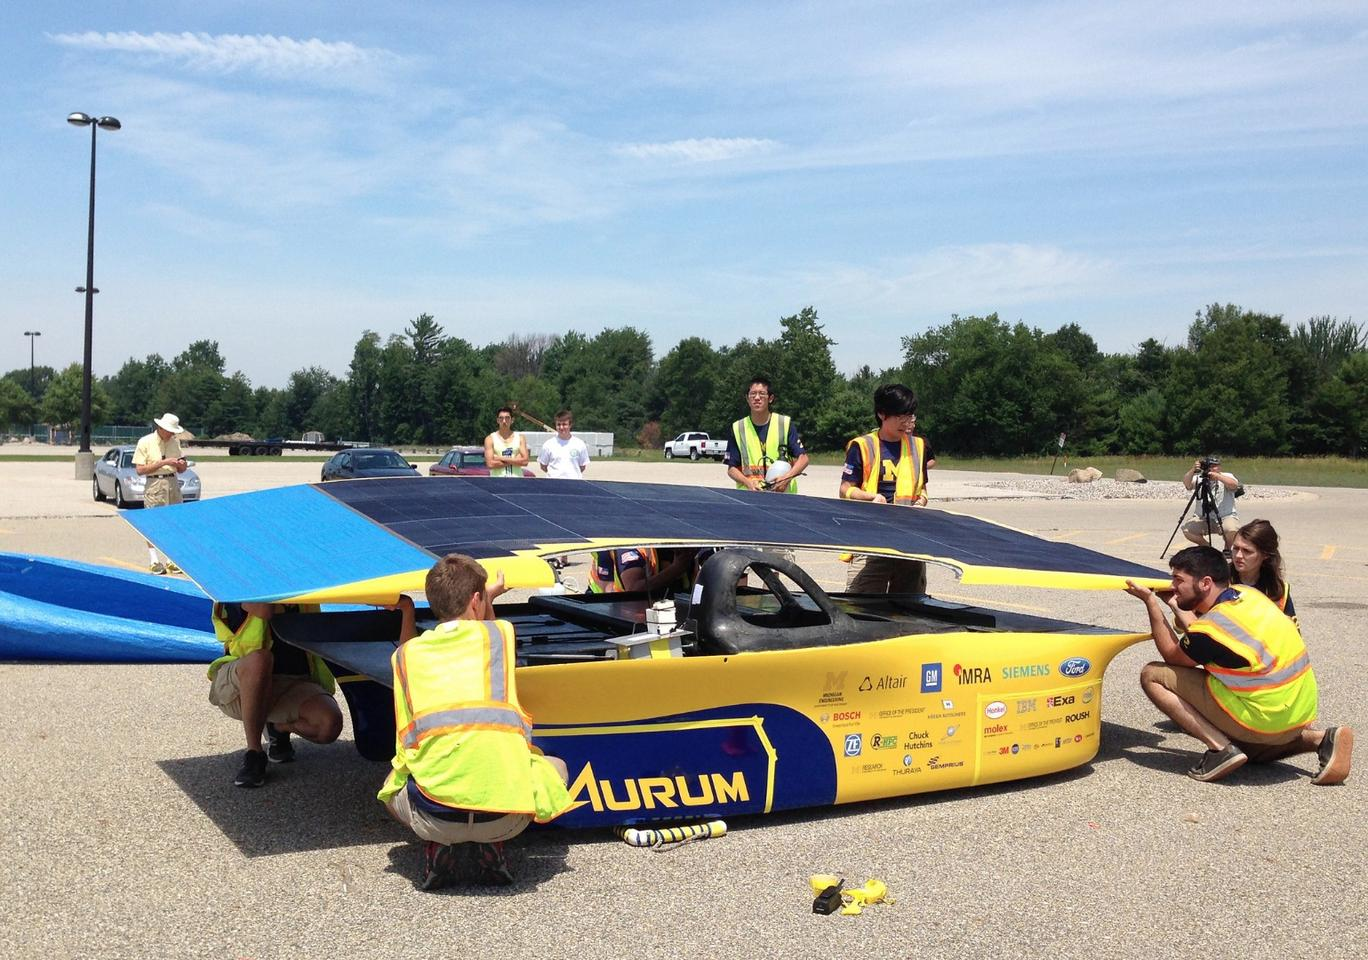 Like every other team currently taking part in the World Solar Challenge, an arduous 3,000 km (1,864 mi) solar-powered race across the Australian outback, the University of Michigan (UM) will look to keep its car chugging along by exposing it to as much sunlight as possible